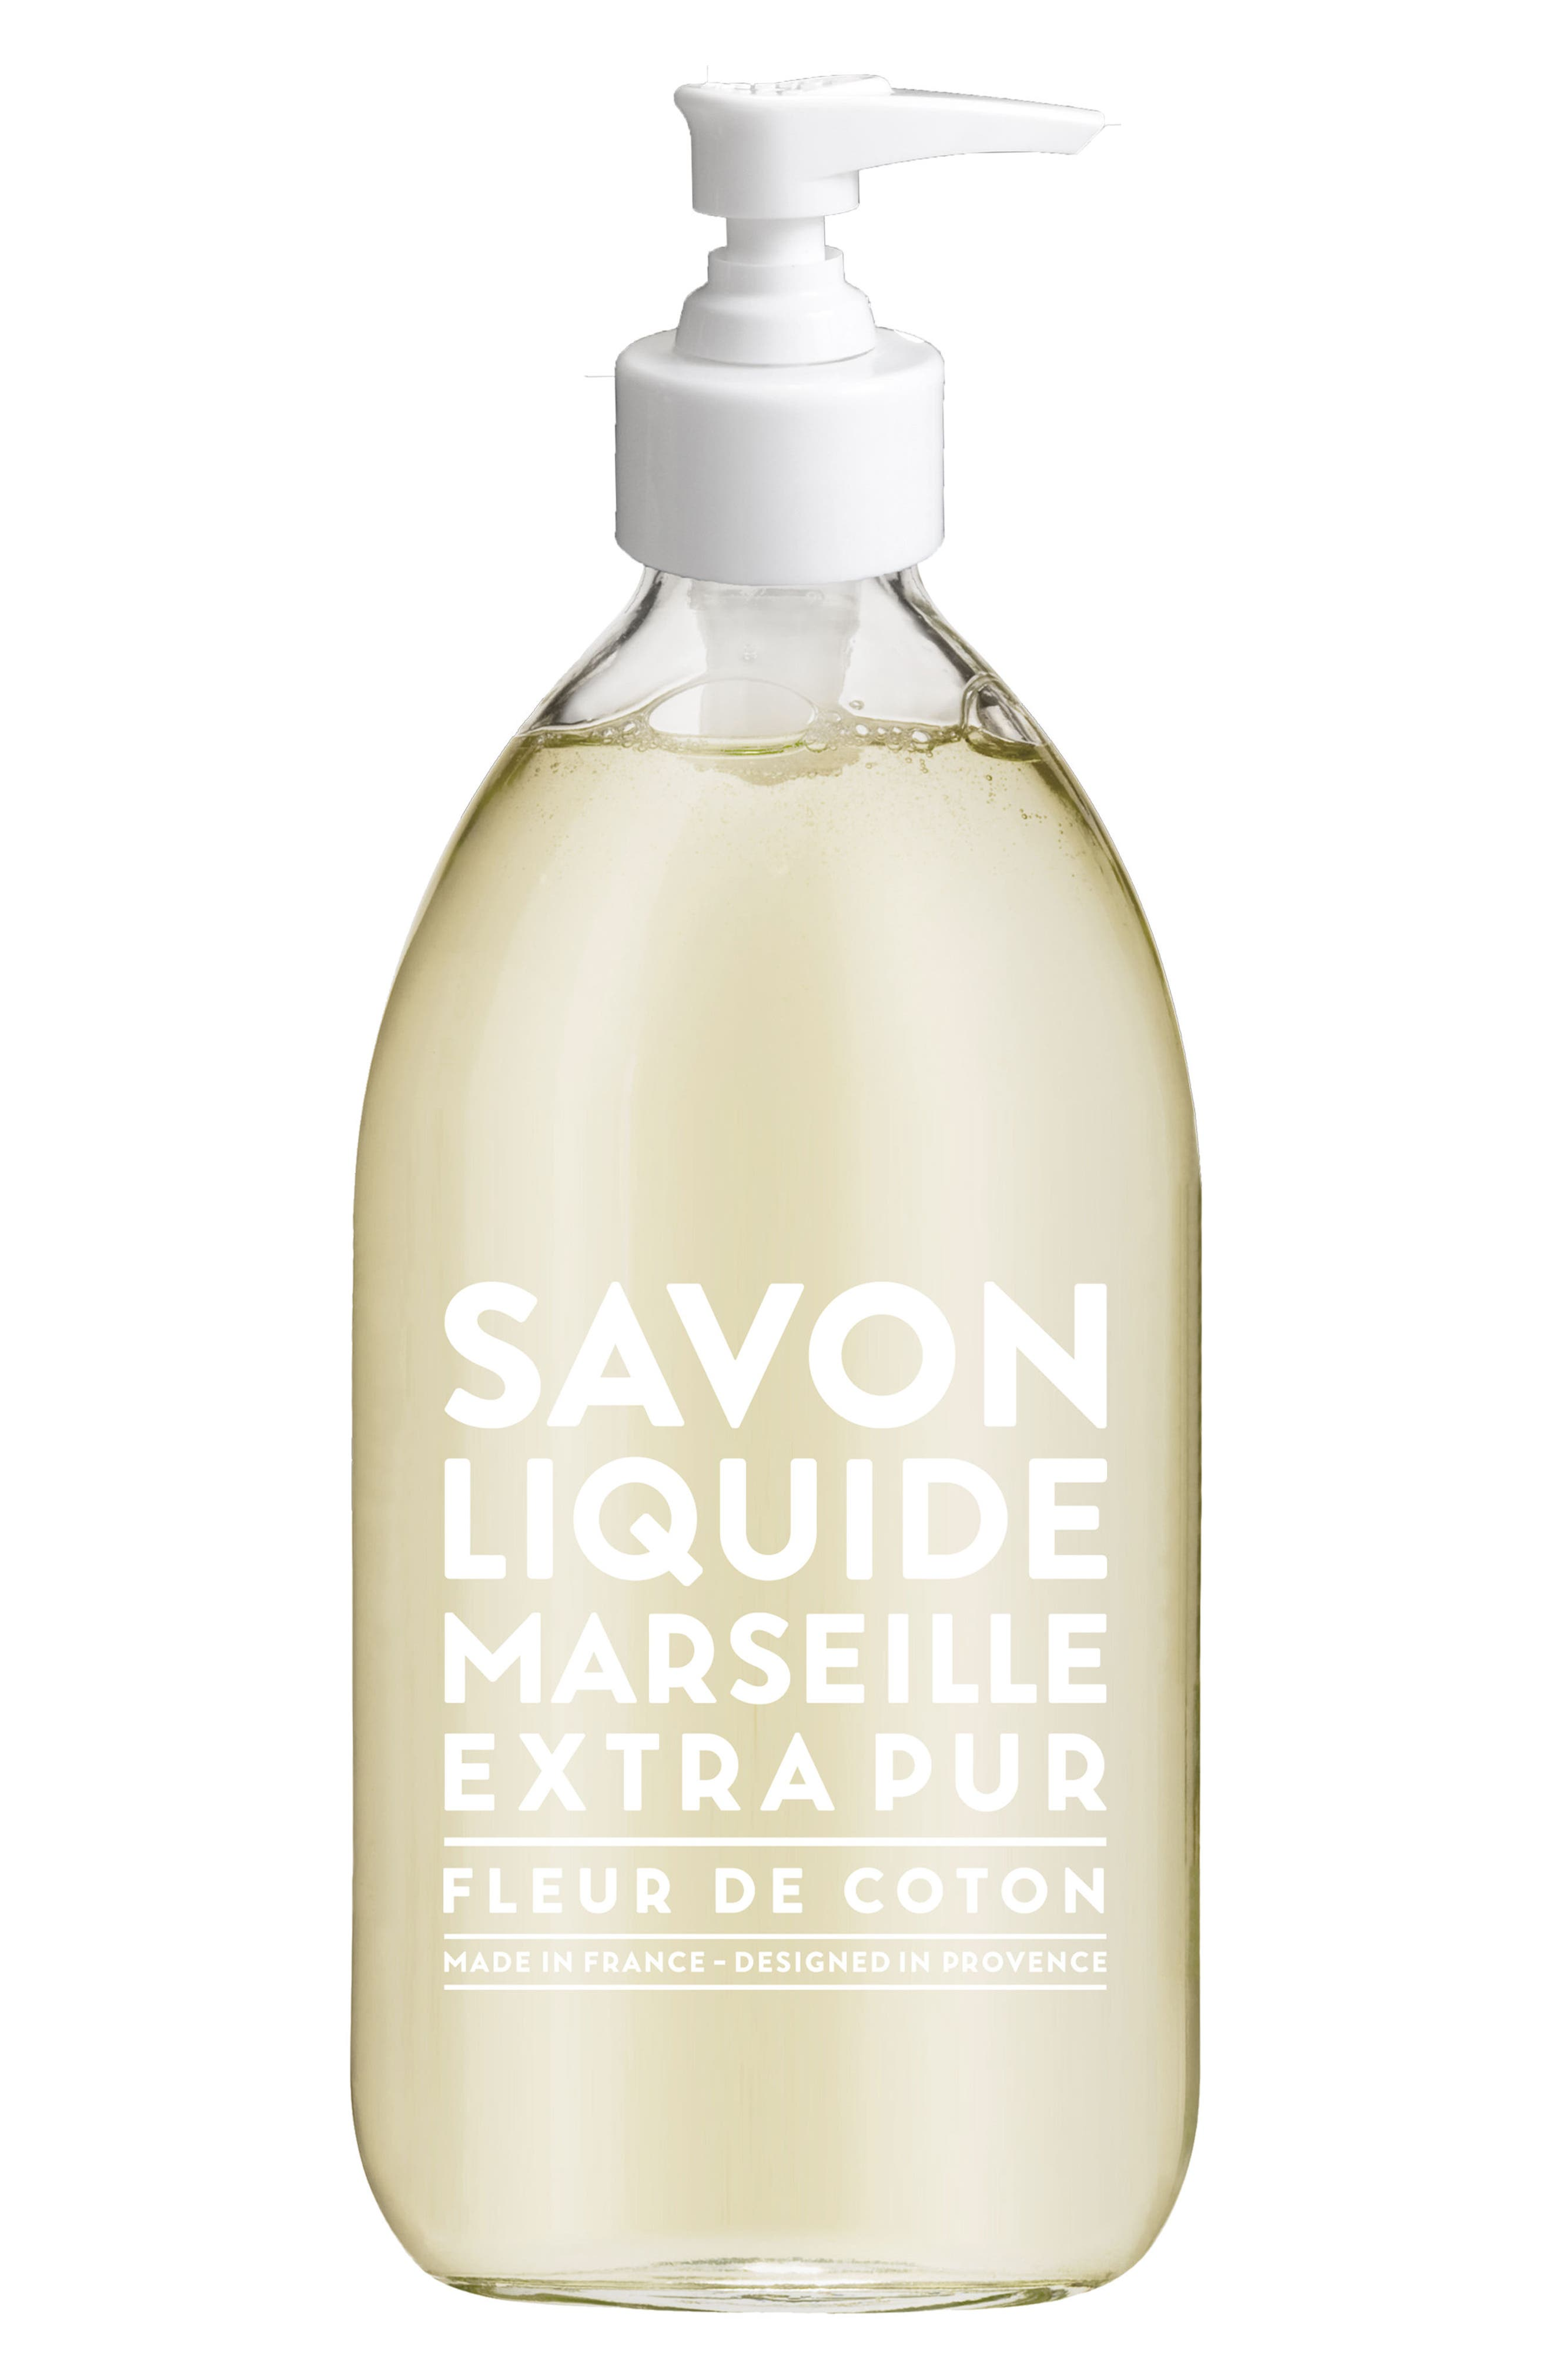 Cotton Flower Liquid Marseille Soap,                             Main thumbnail 1, color,                             NO COLOR